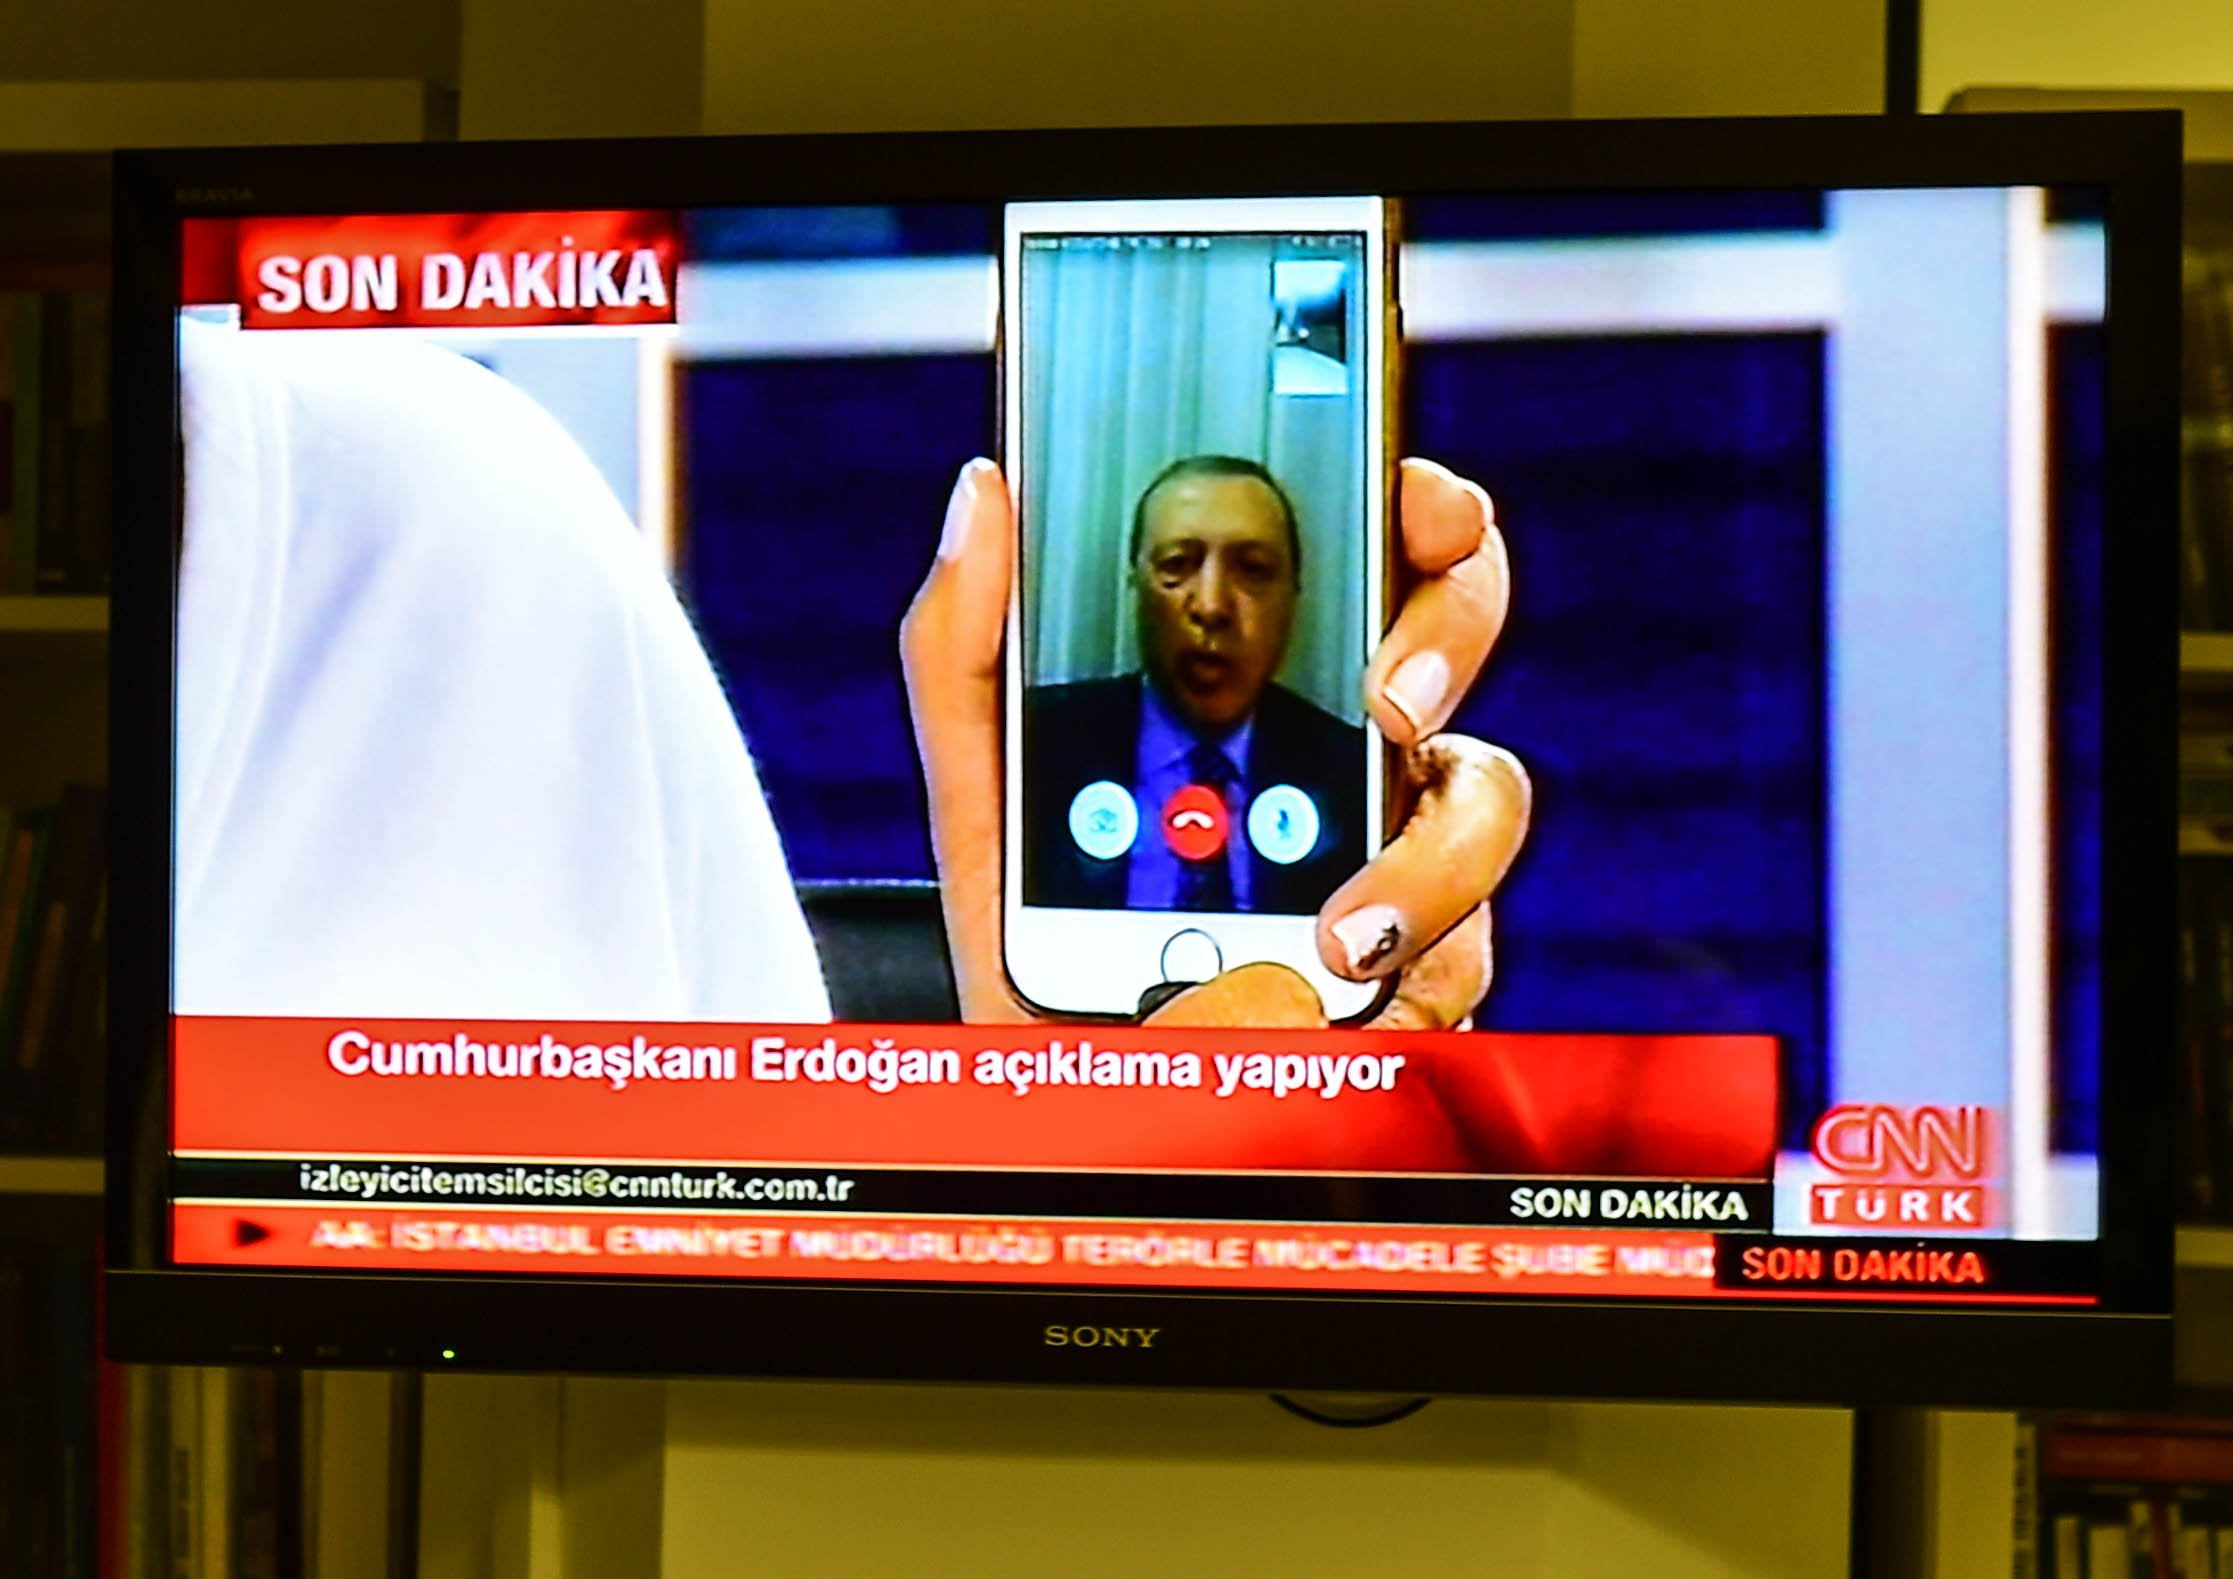 Turkish President Recep Tayyip Erdogan speaks on CnnTurk via facetime call on July 15, 2016, in Istanbul.